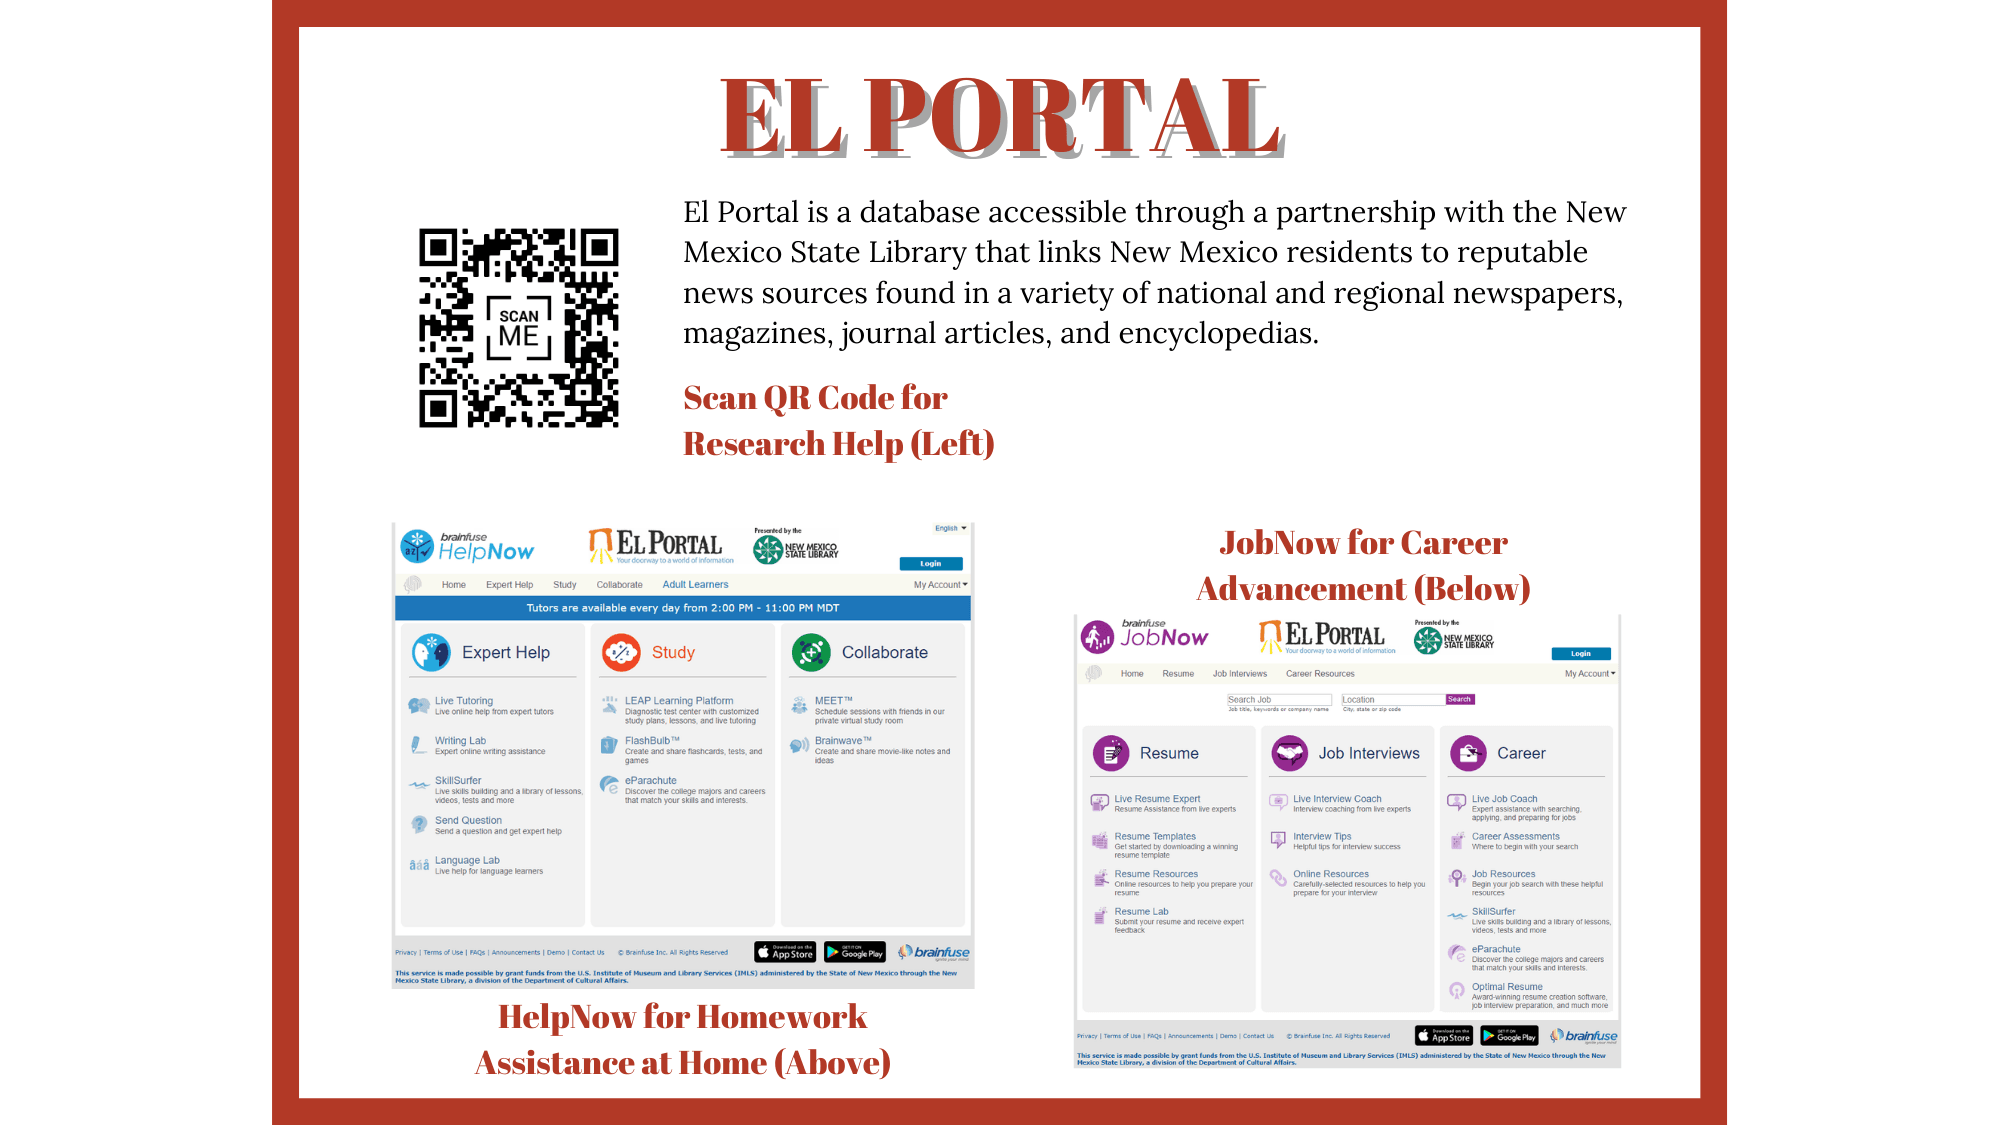 el portal - Online Resources